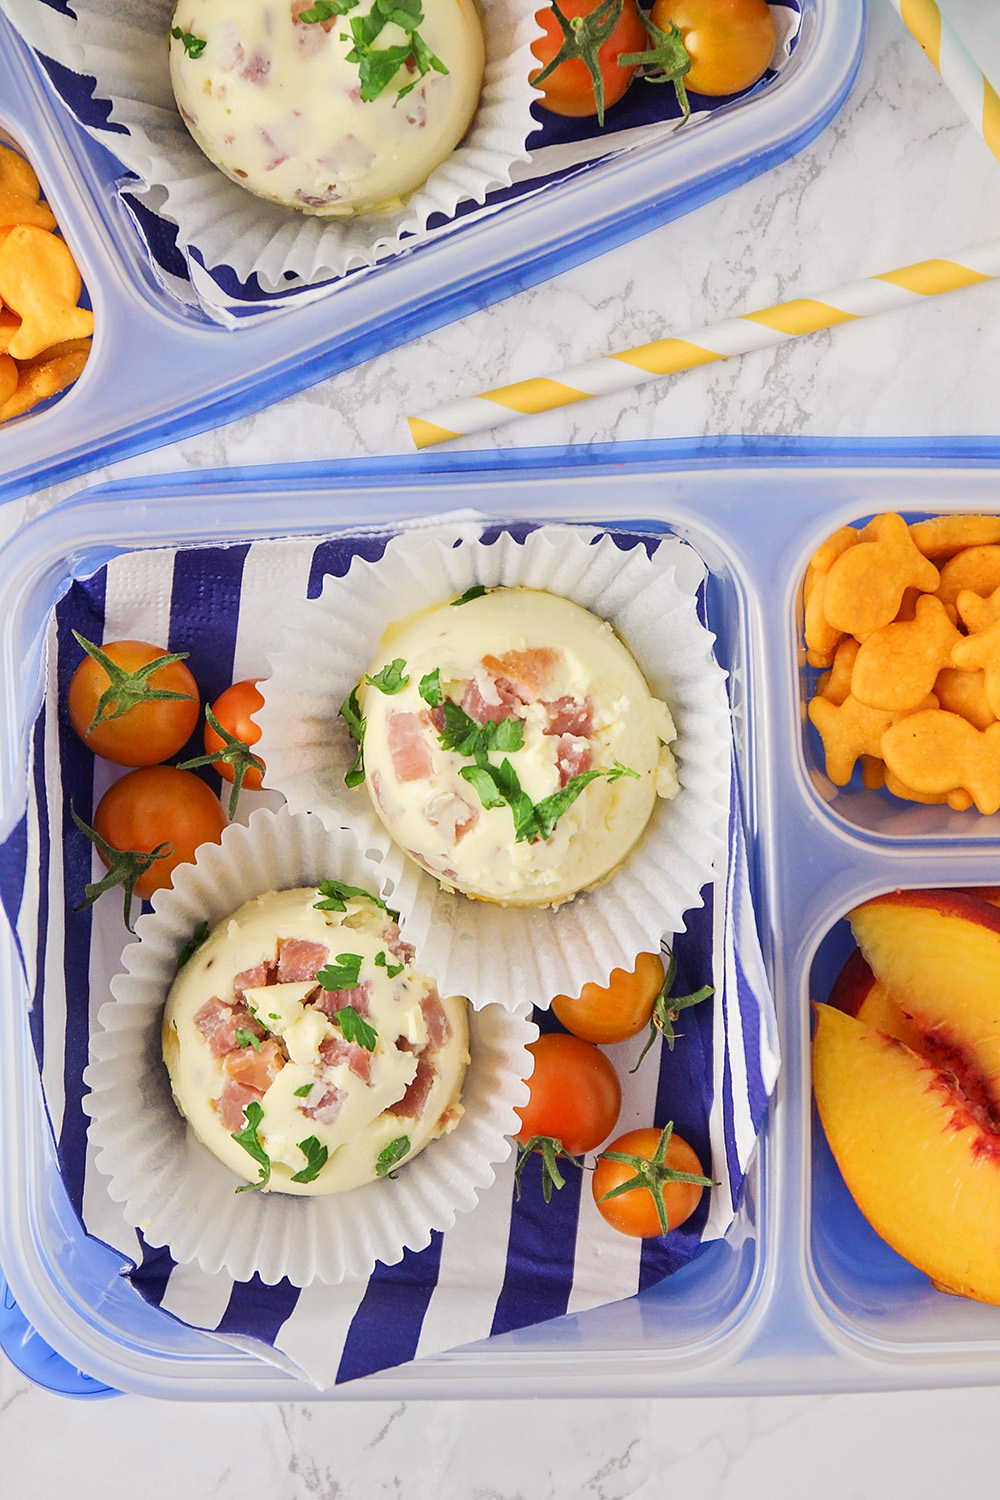 These savory and delicious Instant Pot sous vide egg bites are so easy to make. They're perfect for school lunches, or easy breakfasts on the go!